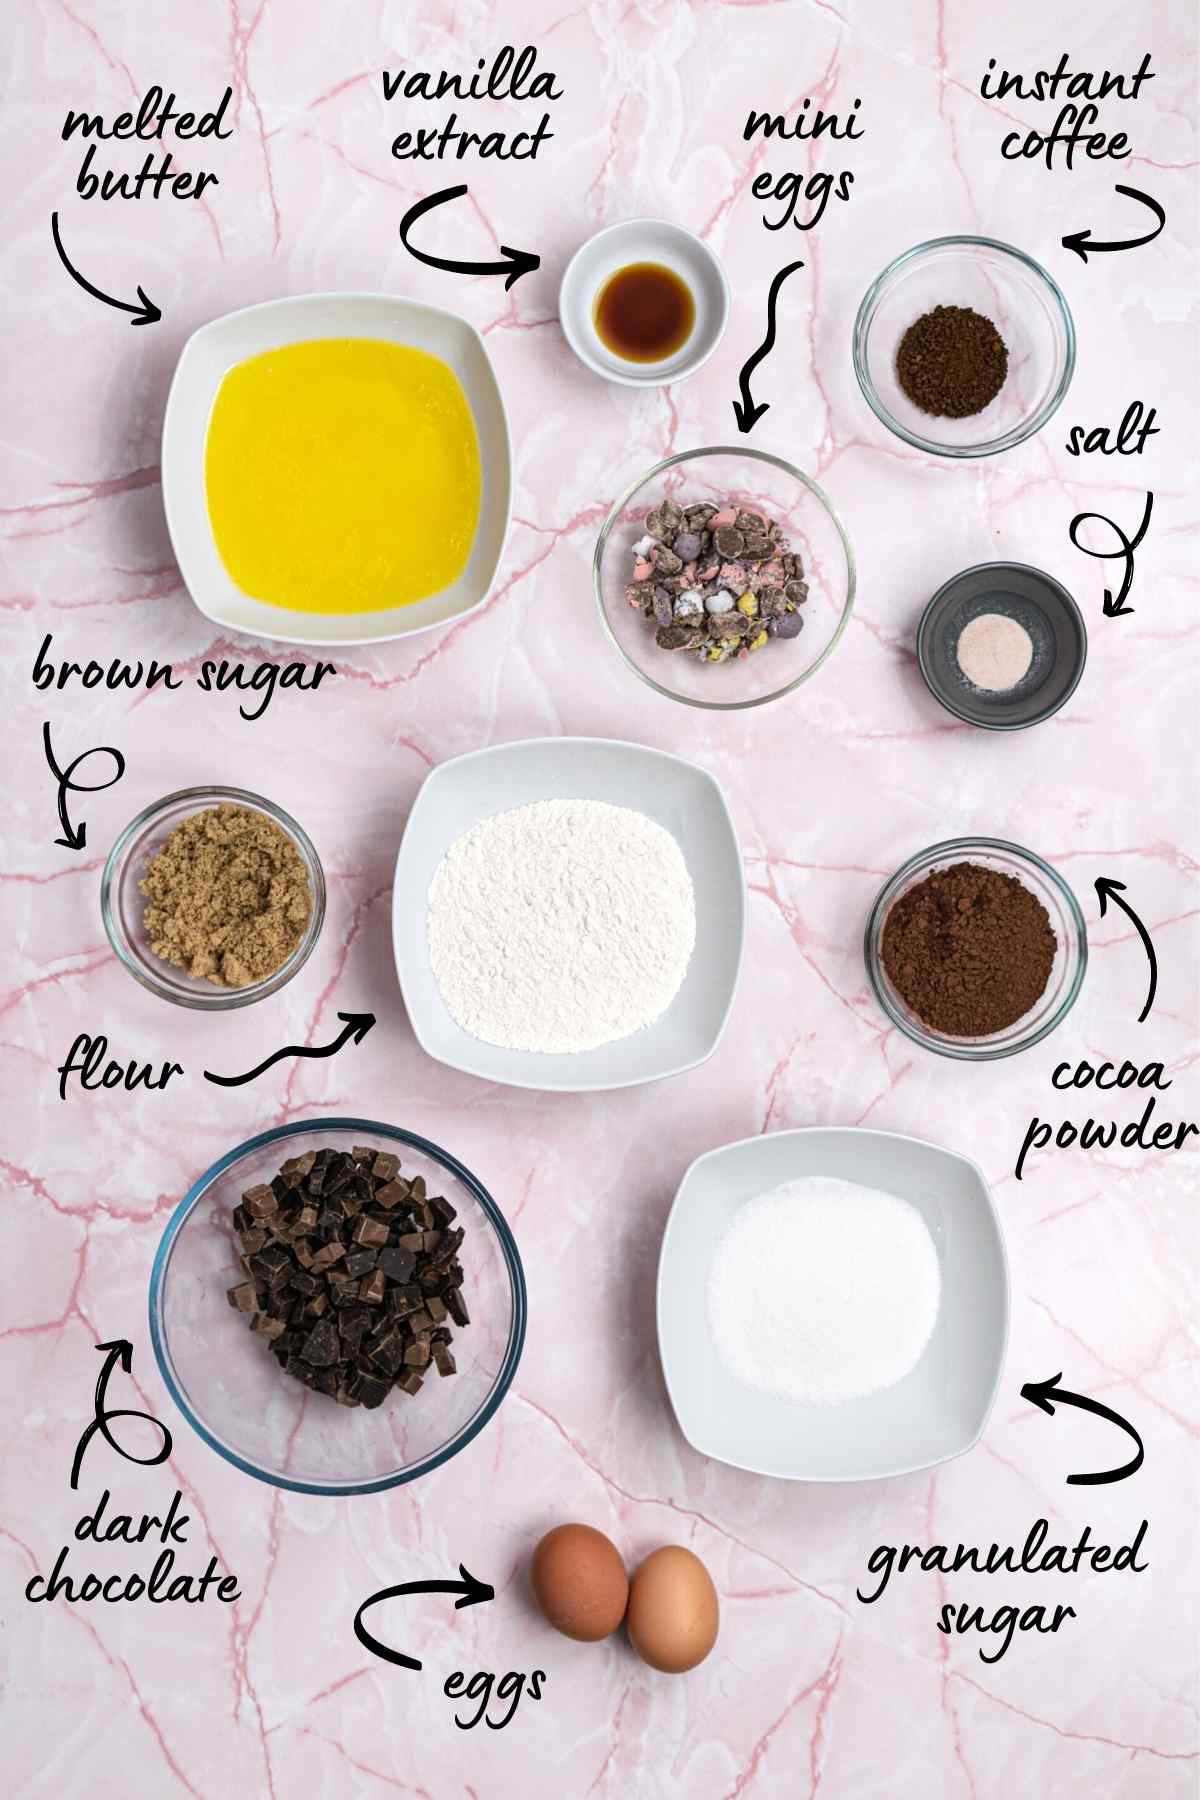 Flatlay image of ingredients with annotations